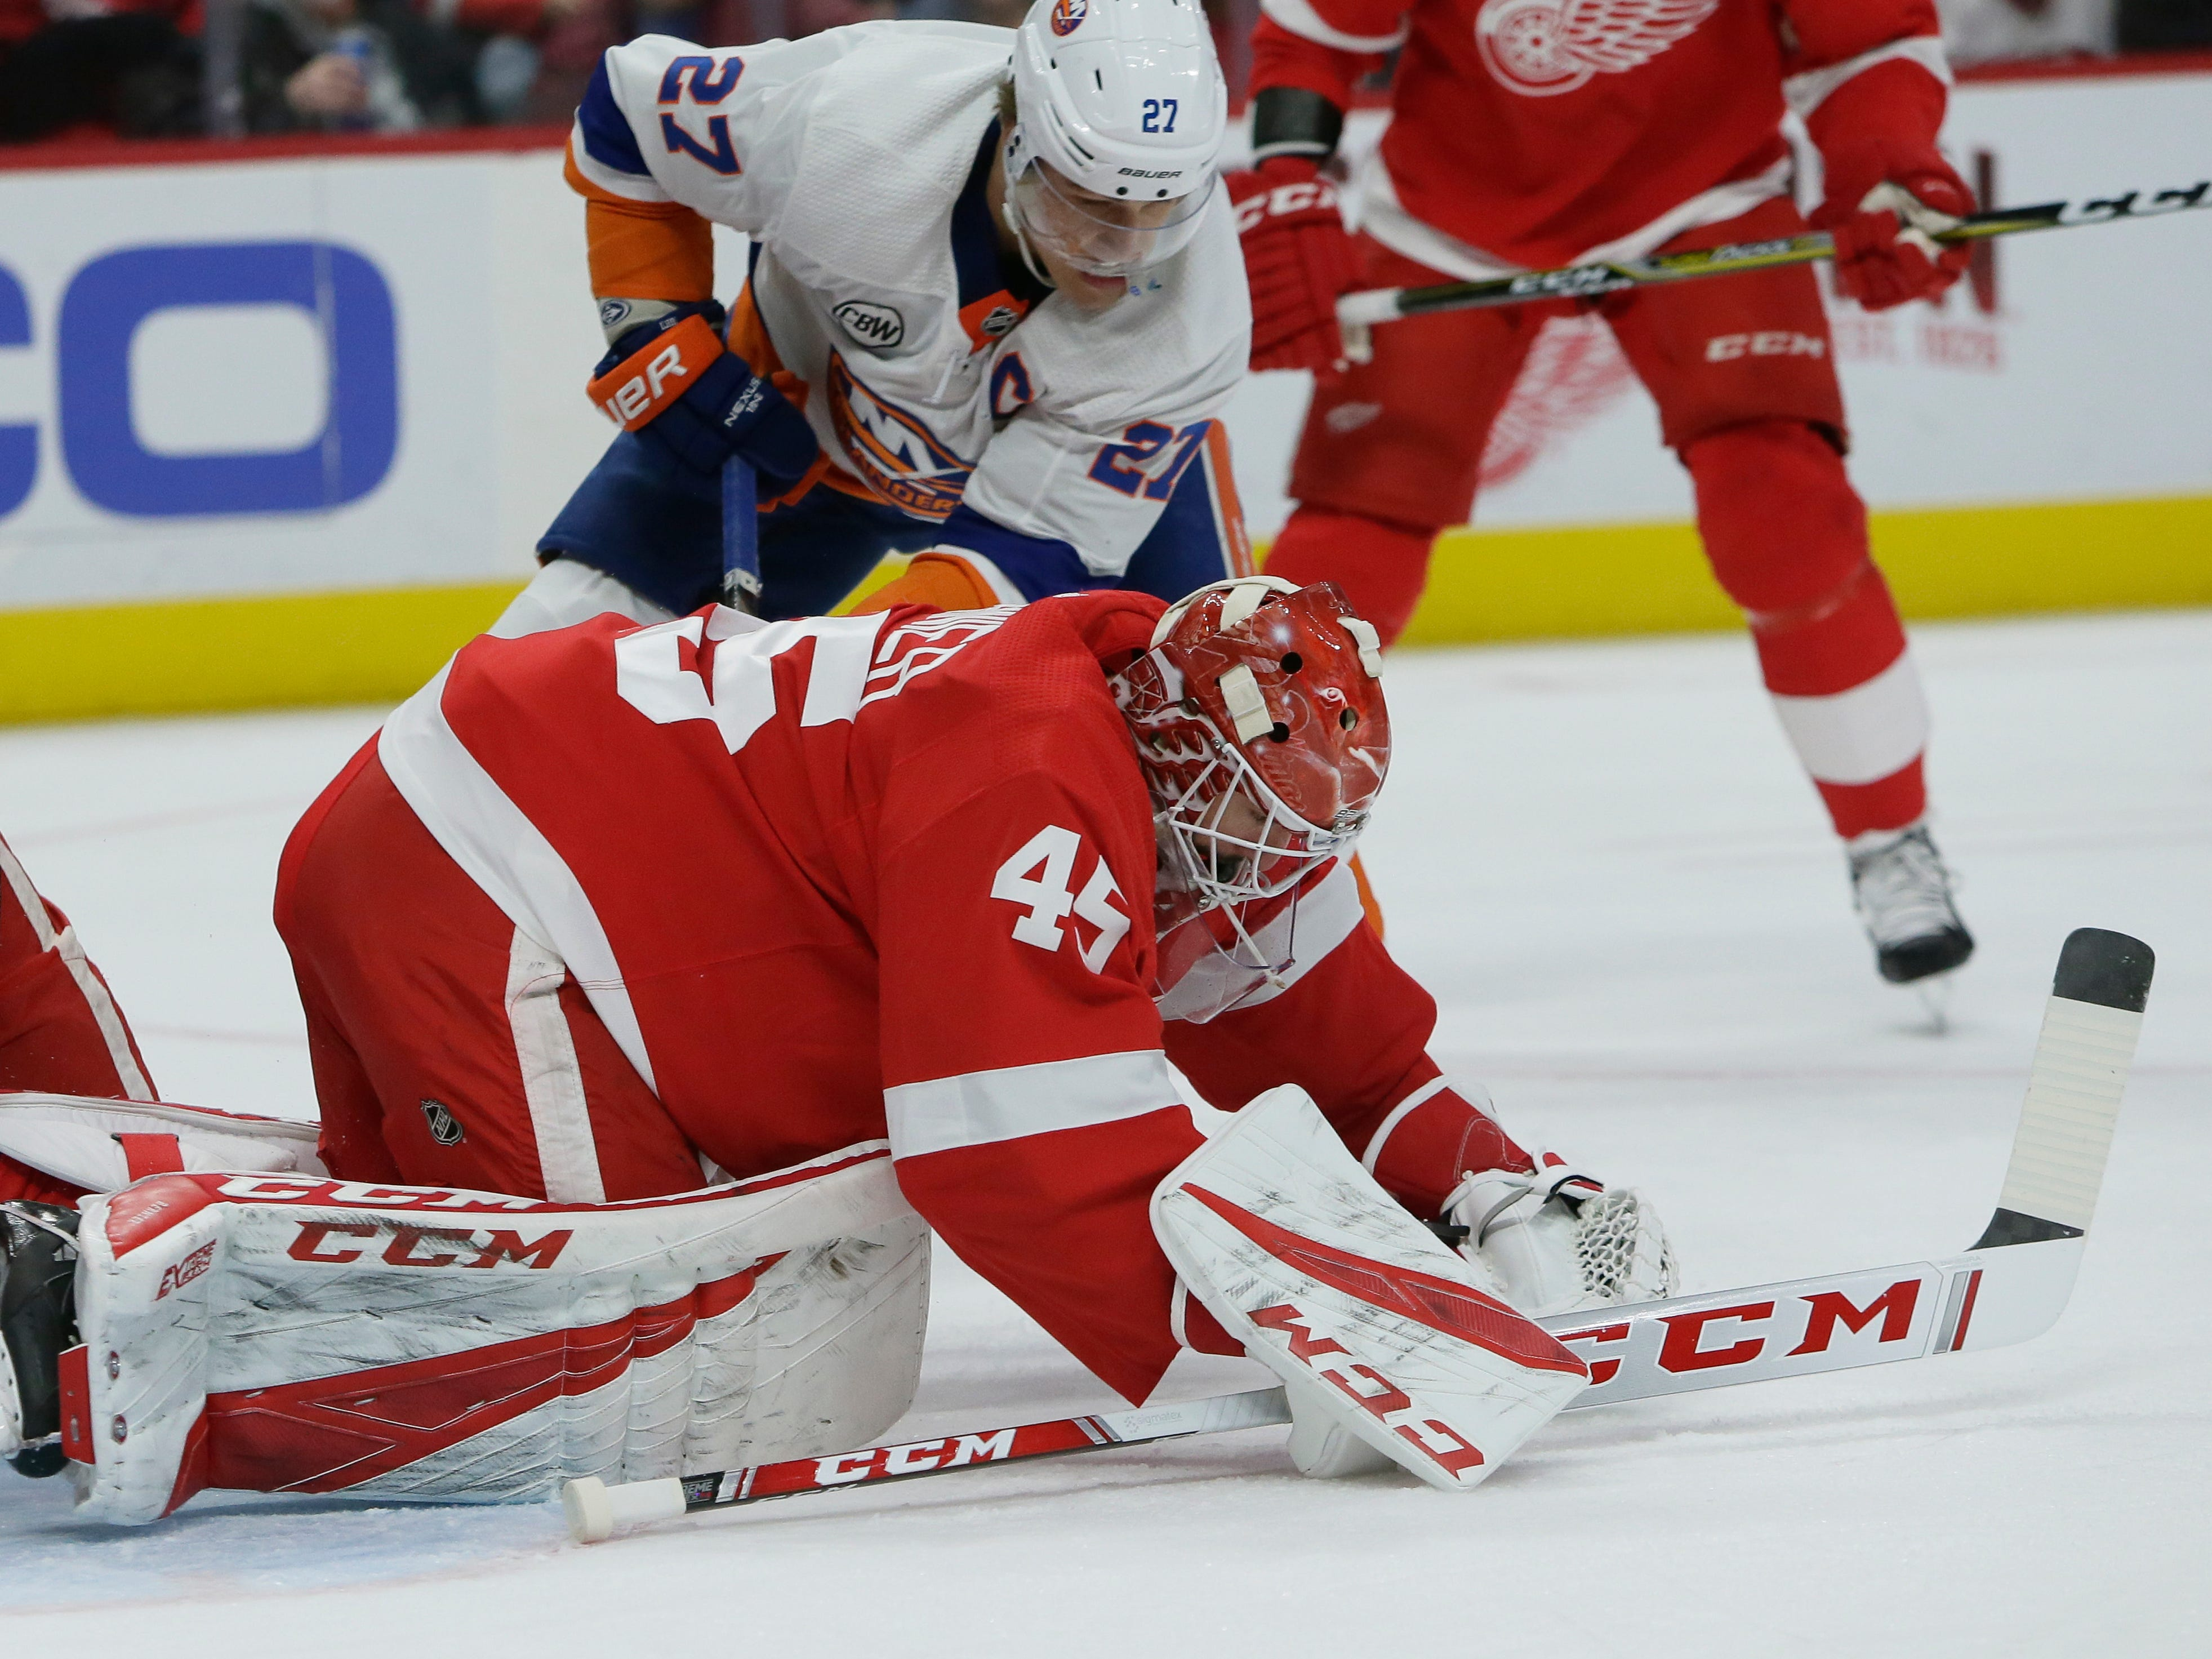 Detroit Red Wings goaltender Jonathan Bernier (45) stops a puck against New York Islanders left wing Anders Lee (27) during the first period.